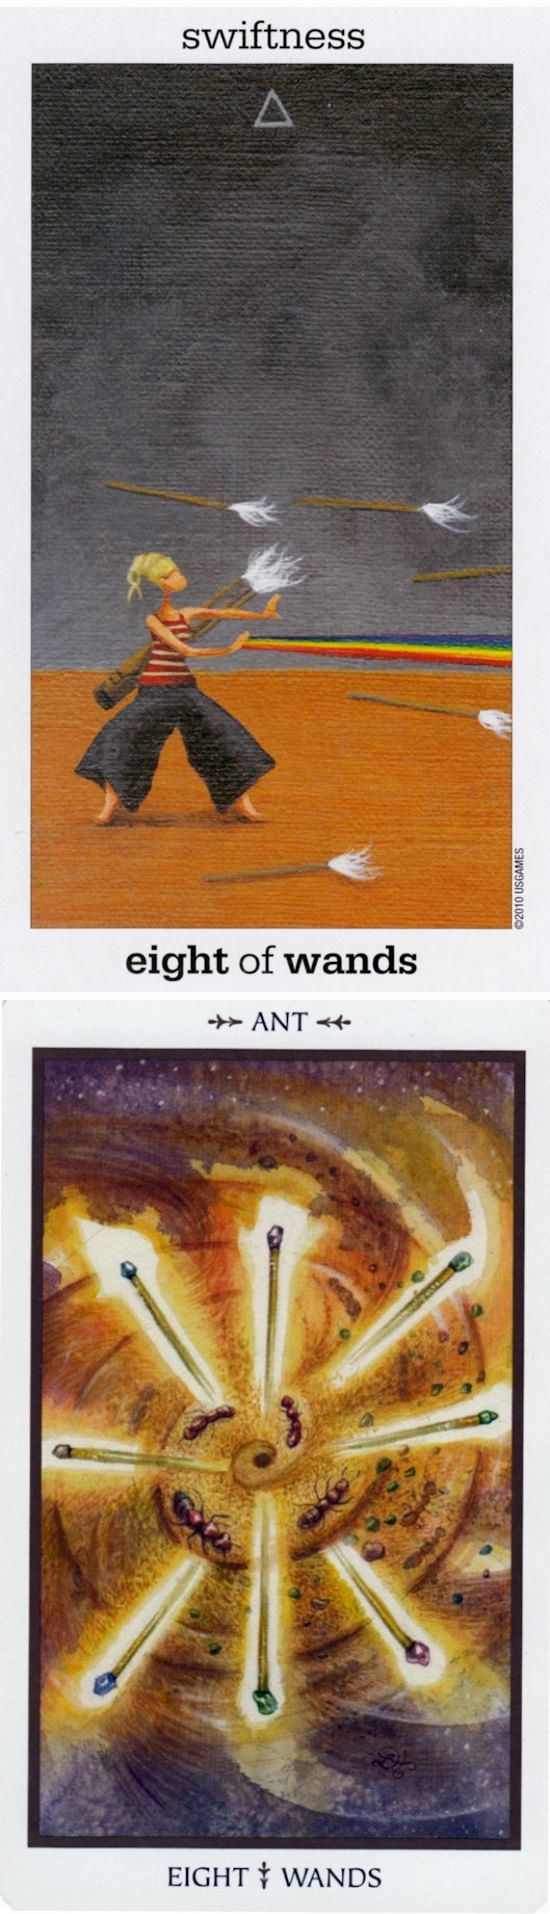 Eight of Wands: rapid action and delays (reverse). Sunmoon Tarot deck and Animals Divine Tarot deck: how to do tarot cards, tarot book vs free accurate tarot reading. New tarot art vintage and oracles woman. #ilovemywitchyways #backtonature #iosapp